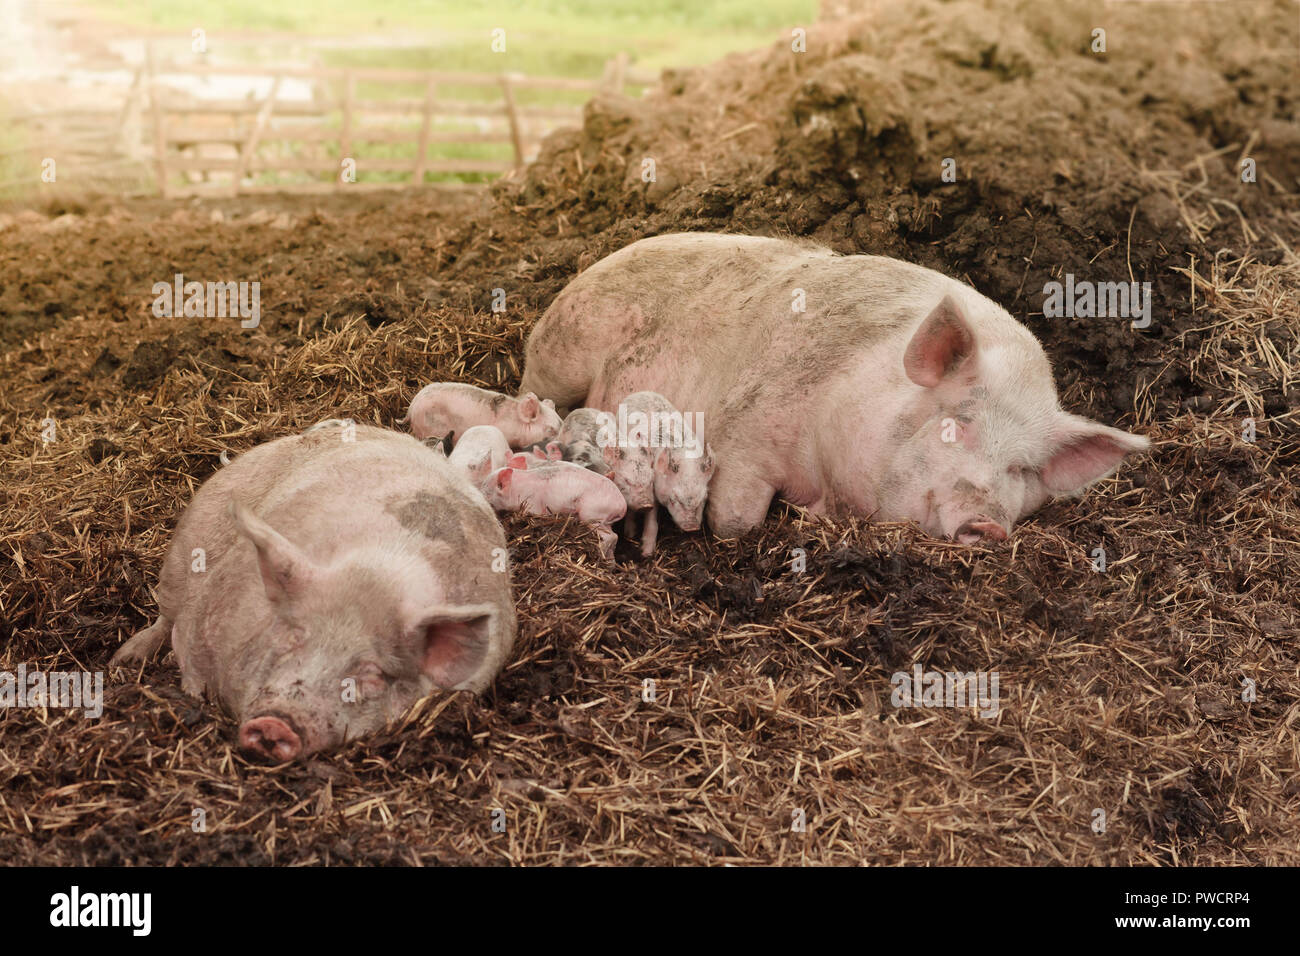 pink parent pigs lying in straw at manure heap with several mixed piglets at a farm background - Stock Image